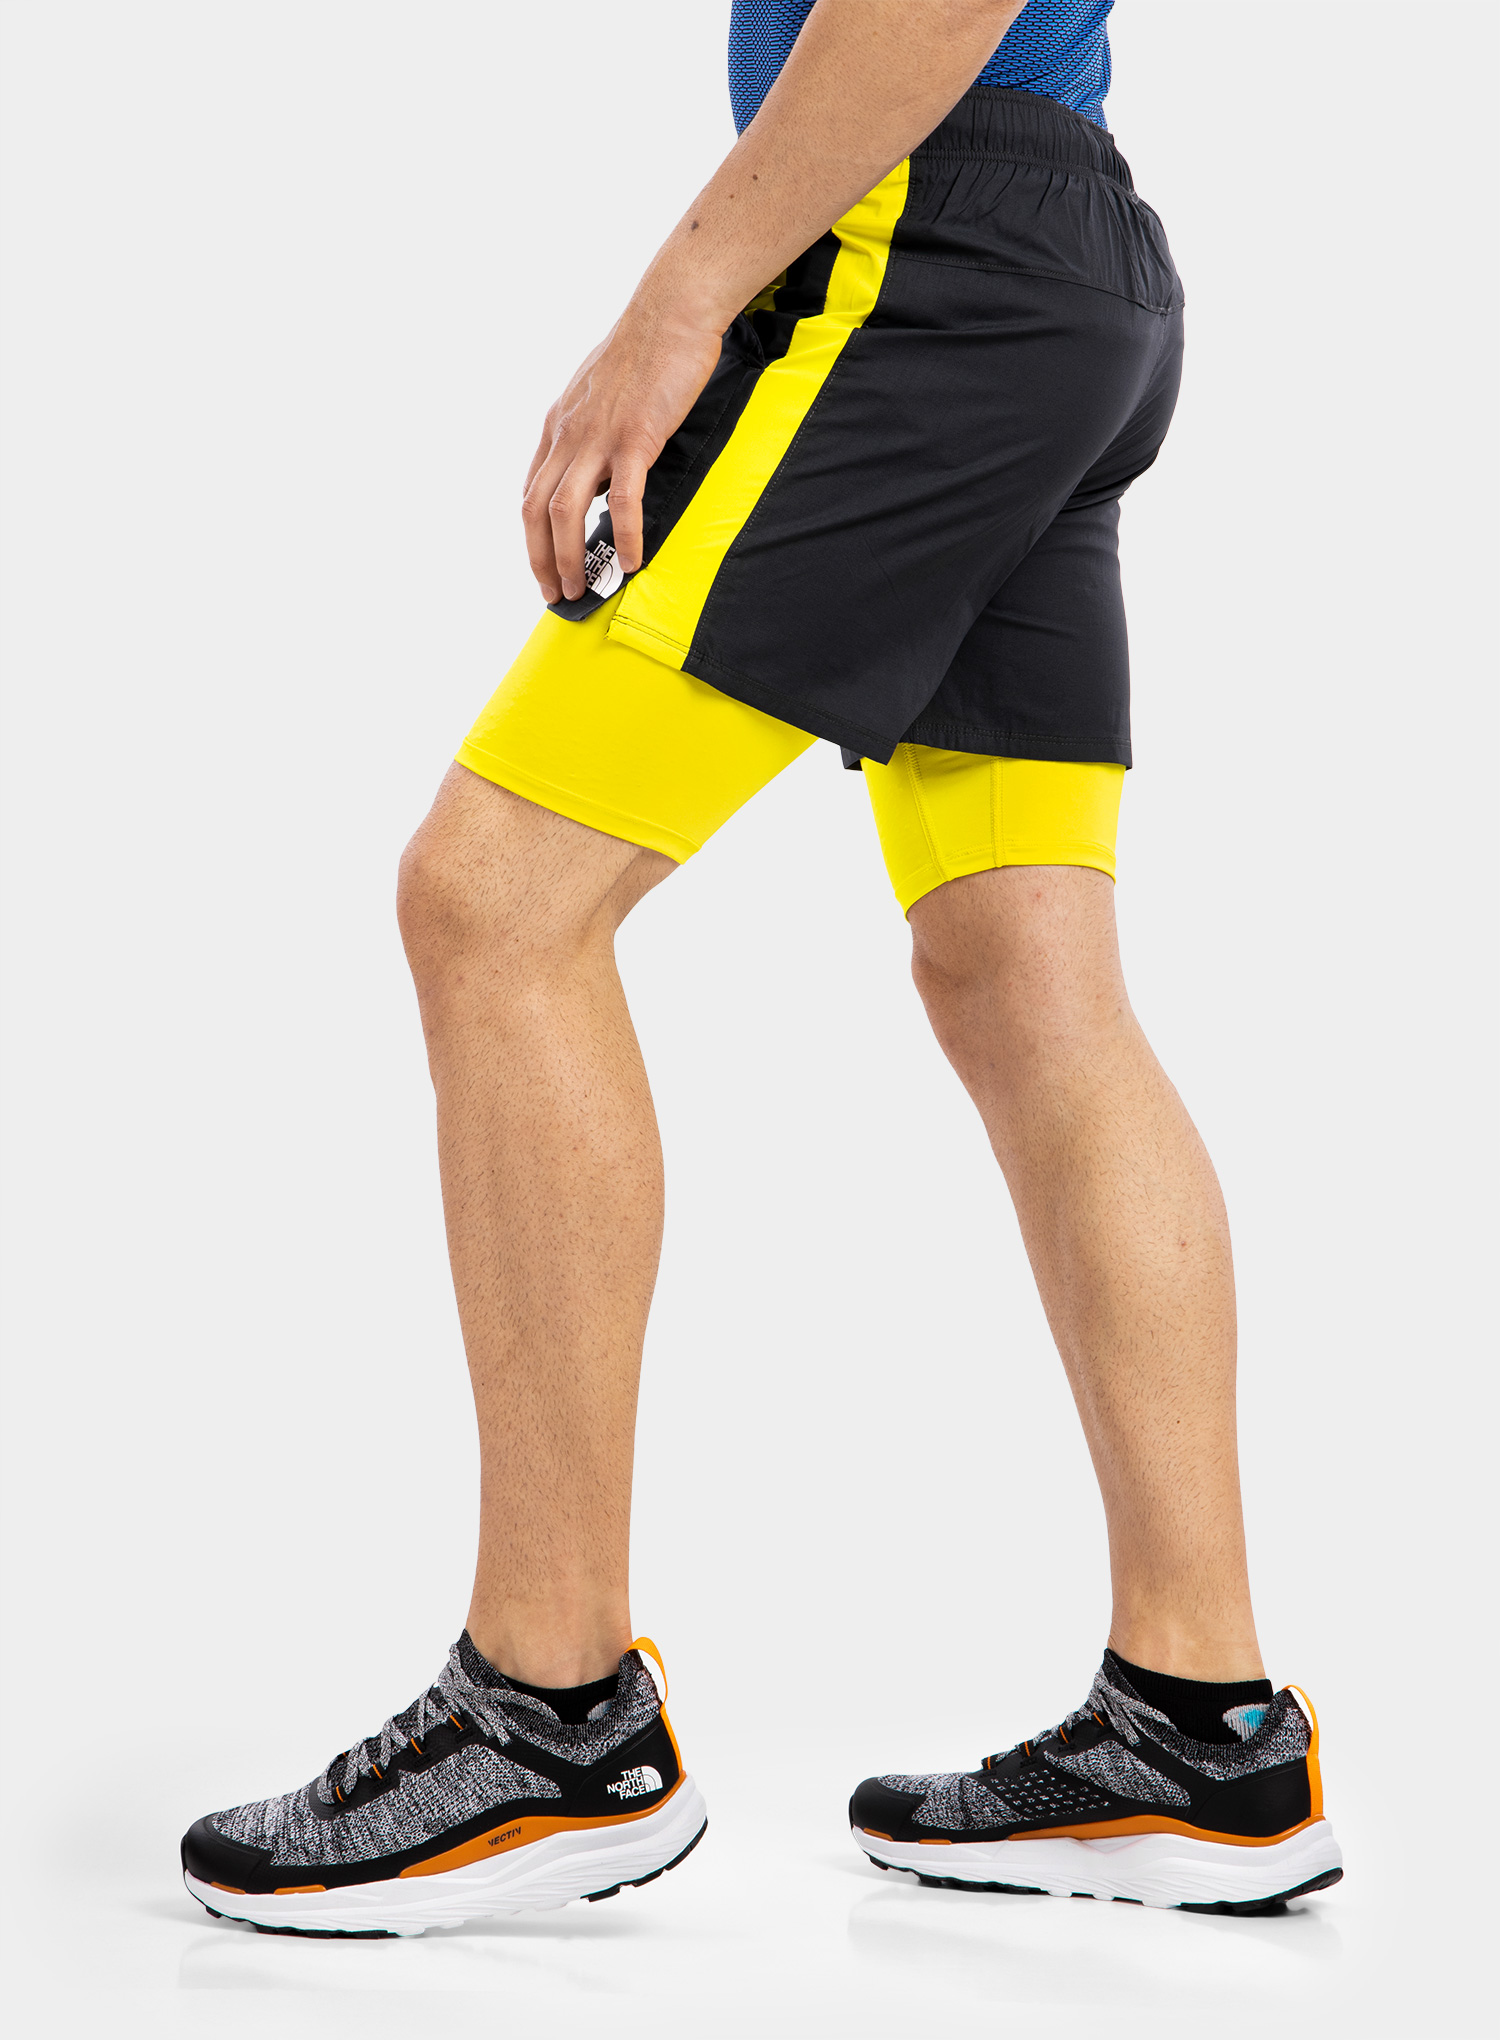 Spodenki The North Face Active Trail Dual Short - grey/sulph - zdjęcie nr. 3